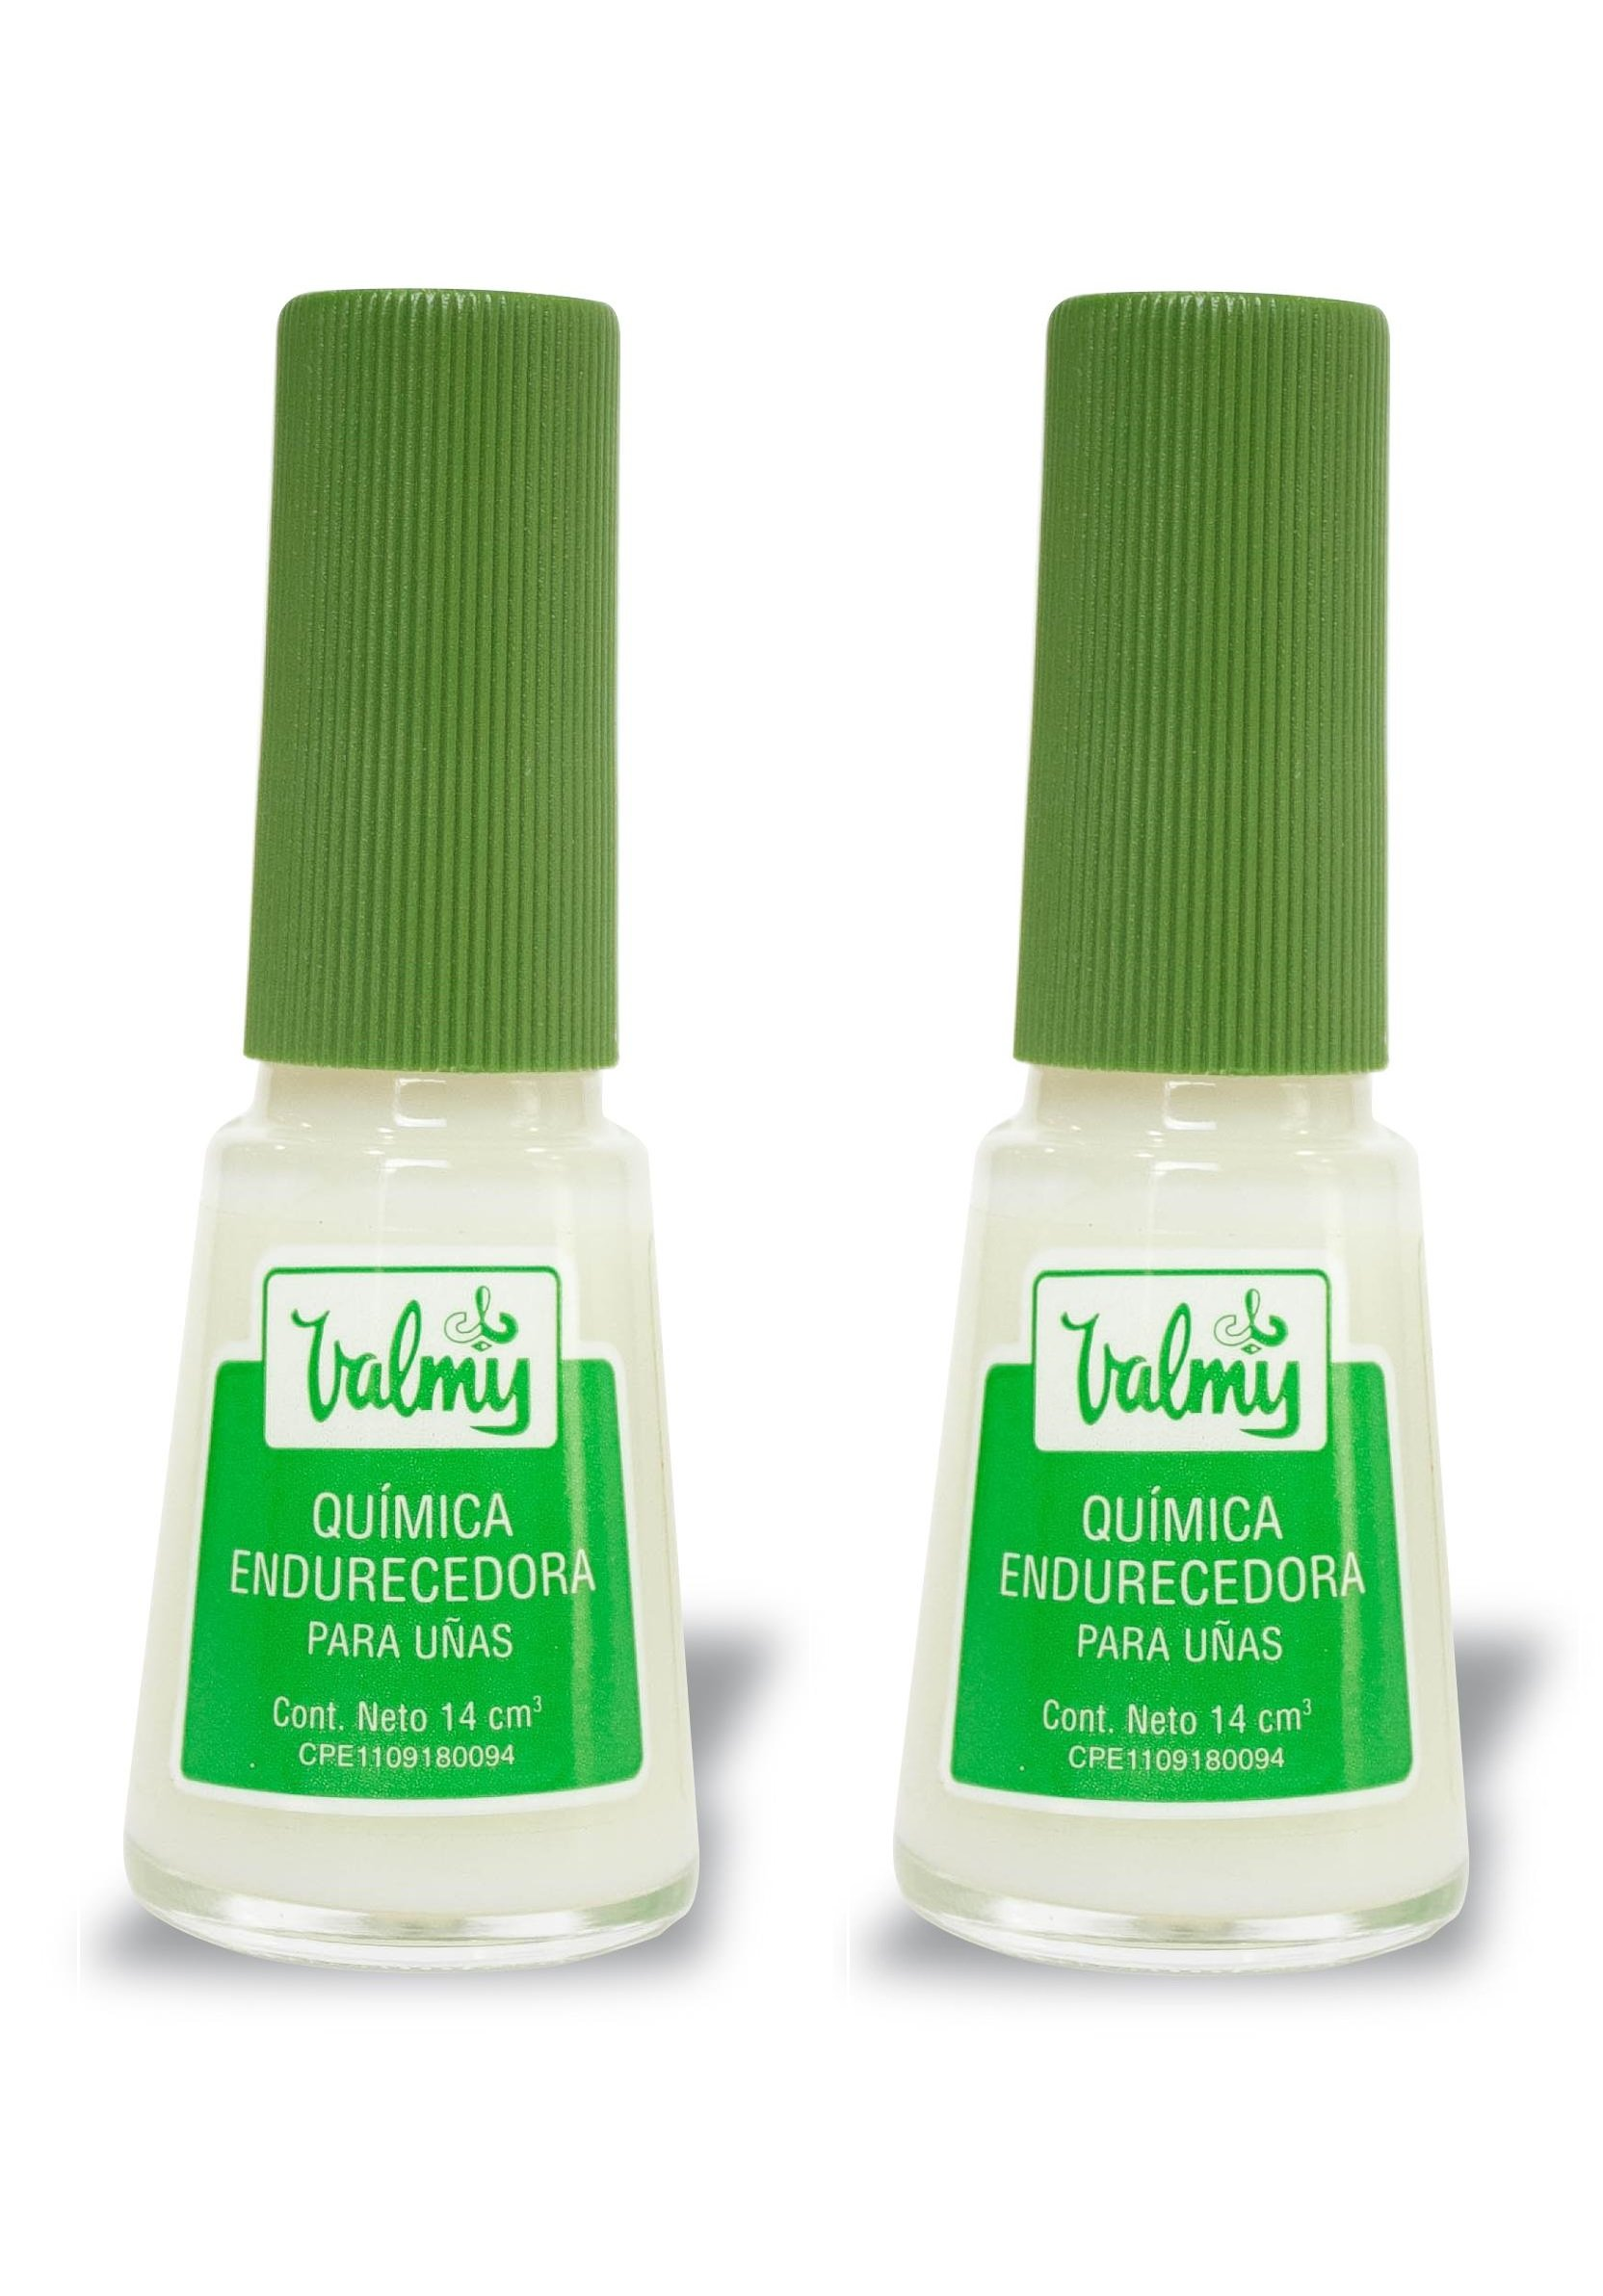 Valmy Quimica Endurecedora Nail Hardener - Strengthener and Protective Polish Treatment for Extra Strong Nails - Pack of 2 by Valmy